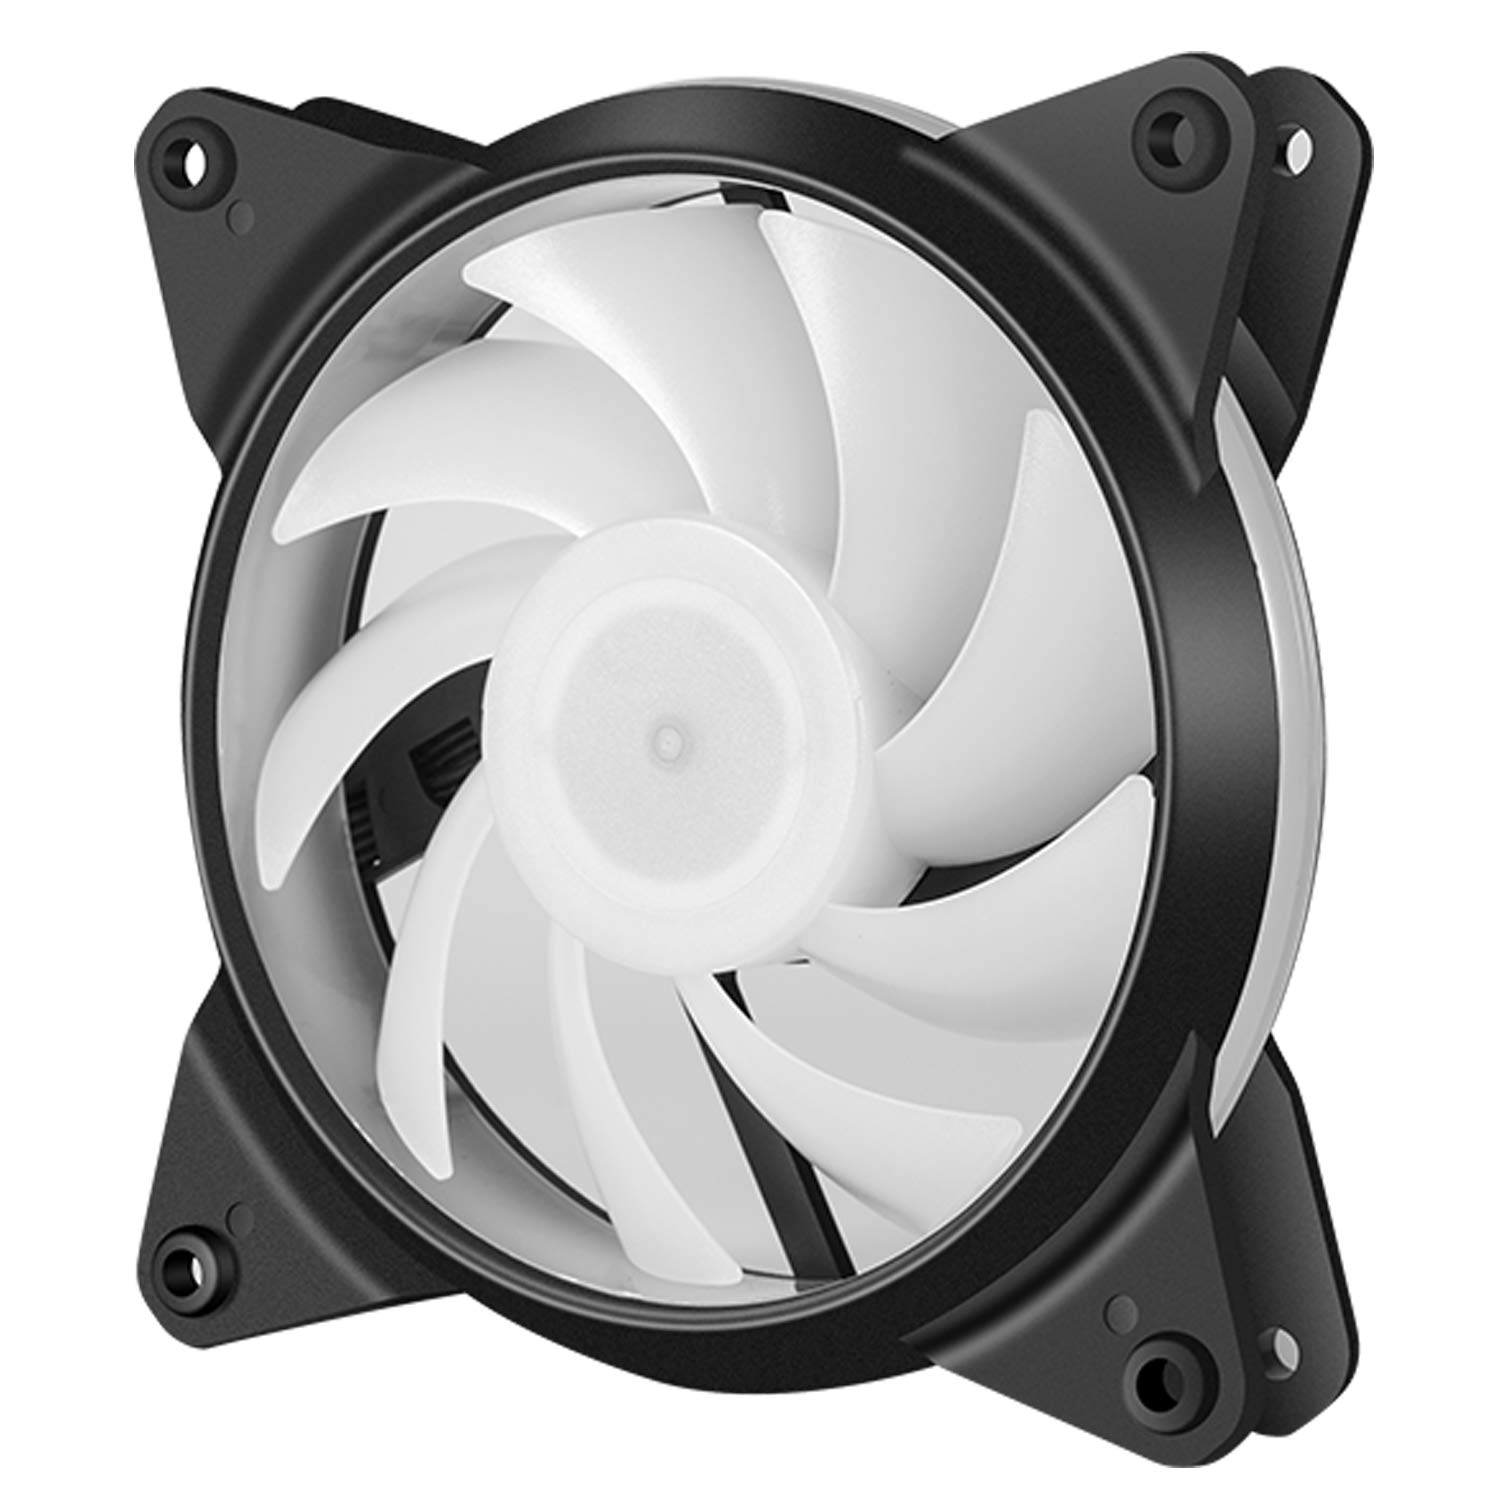 upHere 6-Pack 120mm Silent Intelligent Control Addressable RGB Fan Adjustable Colorful Fans with Controller and Remote,T6C63-6 by upHere (Image #4)